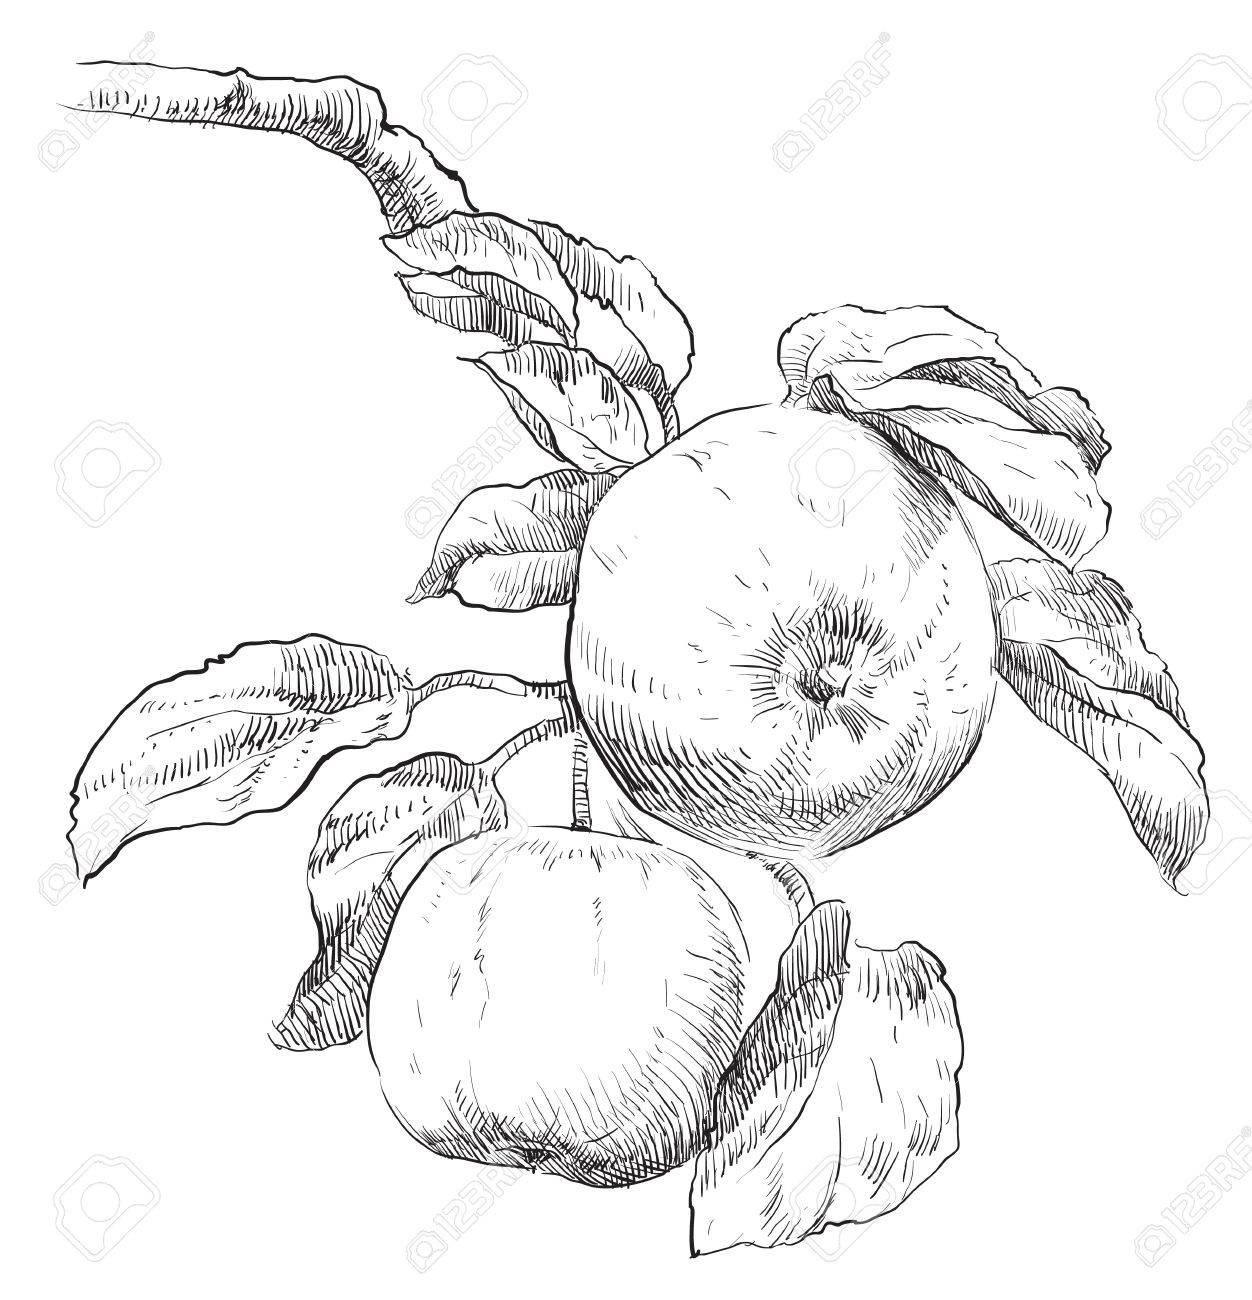 hand drawing apple on apple tree branch royalty free cliparts Johnny Appleseed hand drawing apple on apple tree branch stock vector 49351969